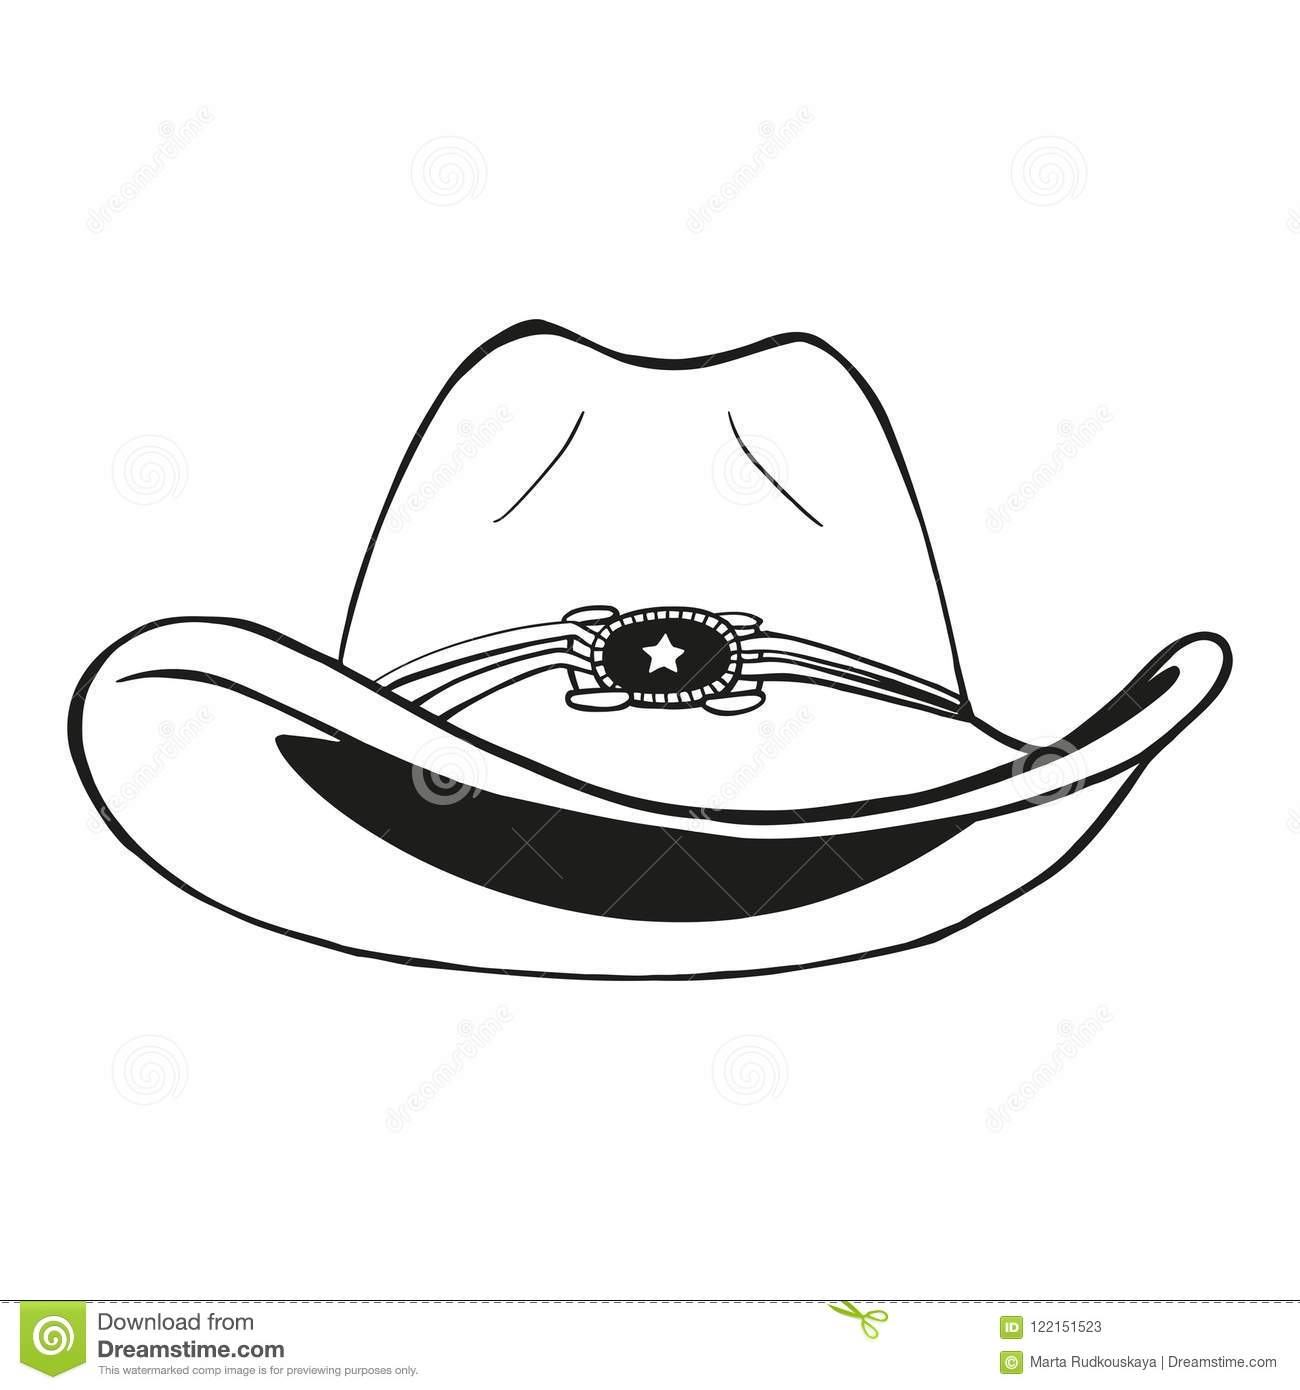 d6369801 Cowboy hat - vintage engraved vector illustration hand drawn style. More  similar stock illustrations